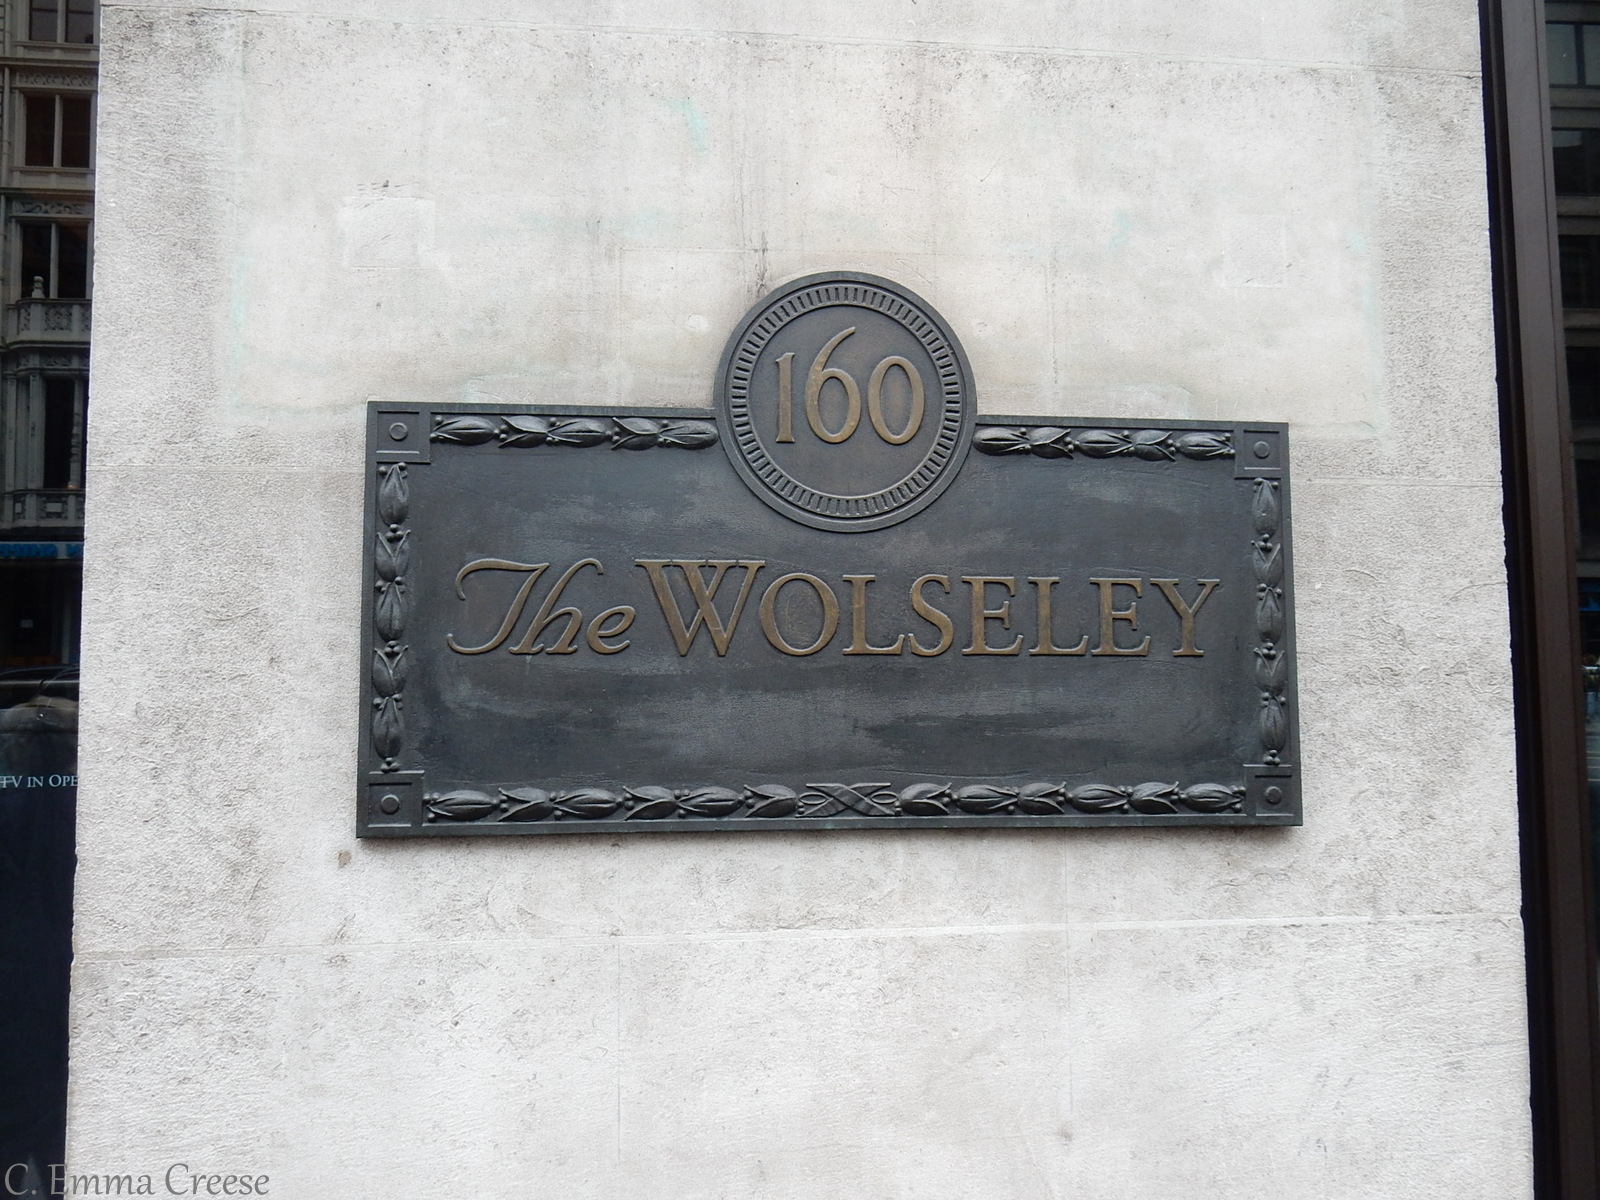 Luxury brunching in style at The Wolseley Adventures of a London Kiwi